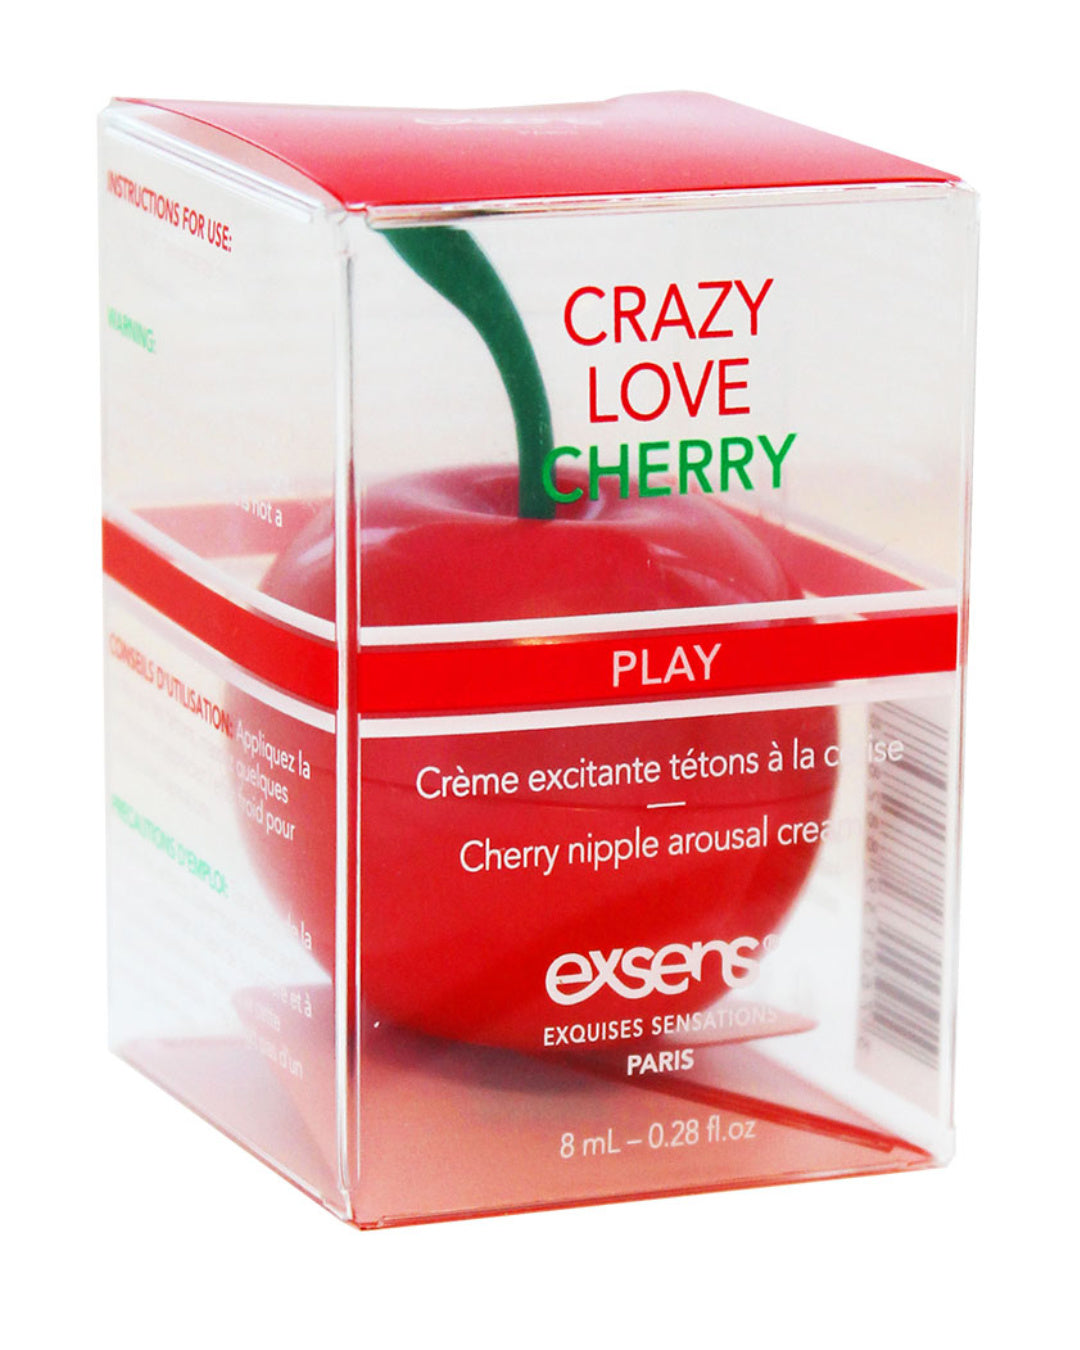 Exsens of Paris Crazy Love Cherry Flavored Nipple Arousal Cream in the package